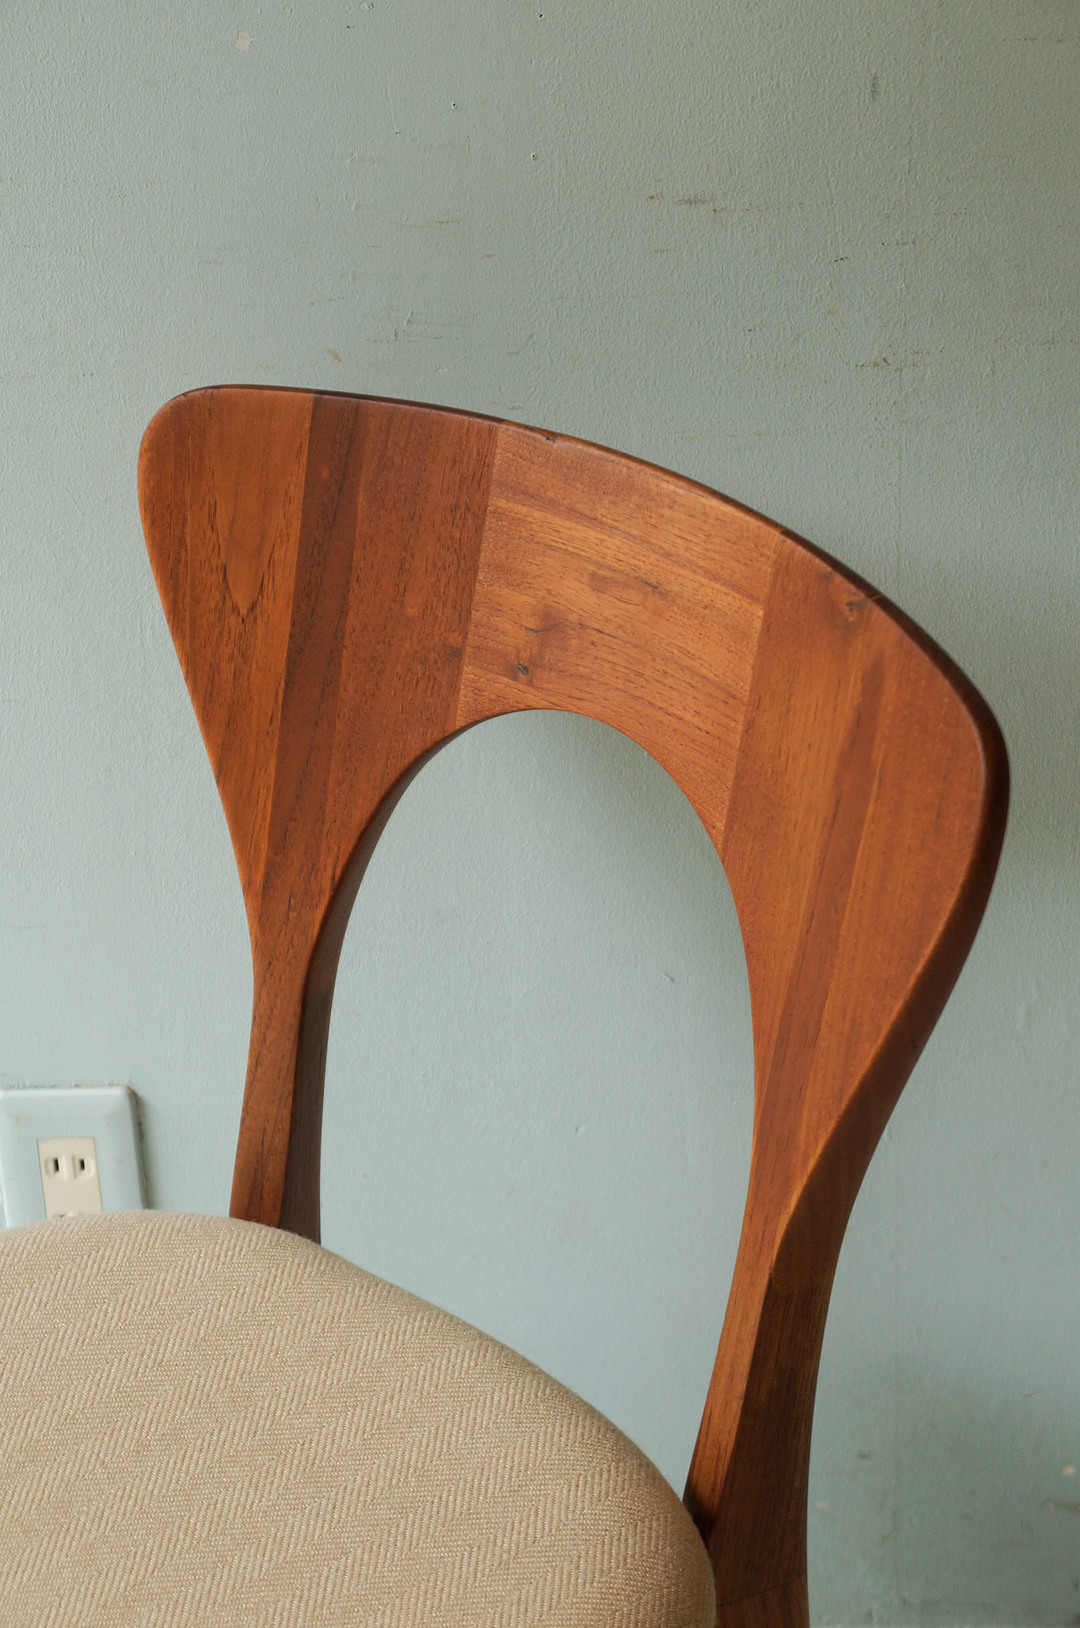 Danish Vintage Dining Chair Peter by Niels Koefoed for KOEFOEDS HORNSLET/デンマーク ヴィンテージ ダイニングチェア ピーター ニールス・コフォード 椅子 北欧家具 チーク材 ベージュ